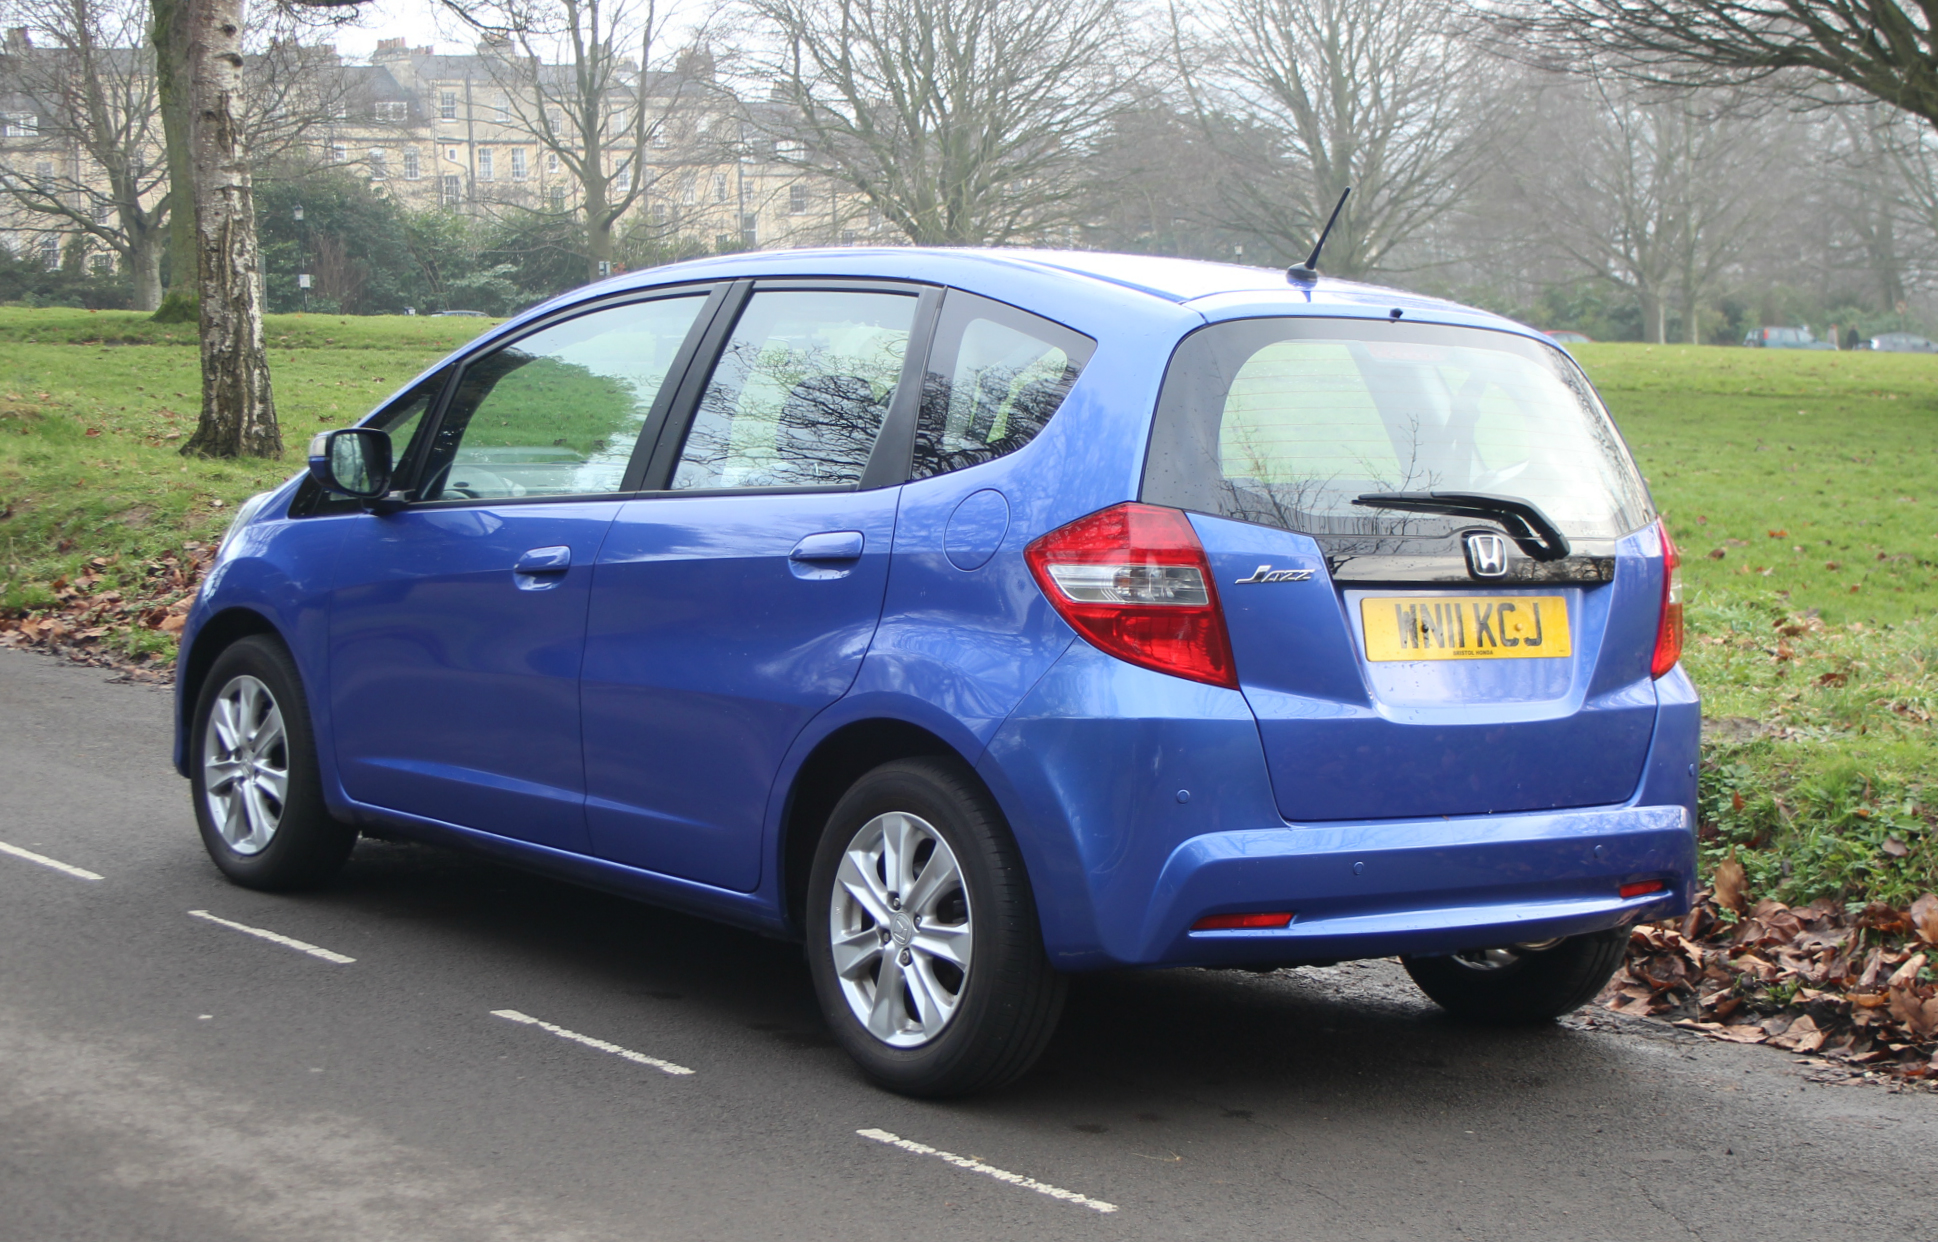 Lot 317 - A HONDA JAZZ FIVE-DOOR HATCHBACK MOTOR CAR in metallic blue, automatic transmission, 1300cc petrol